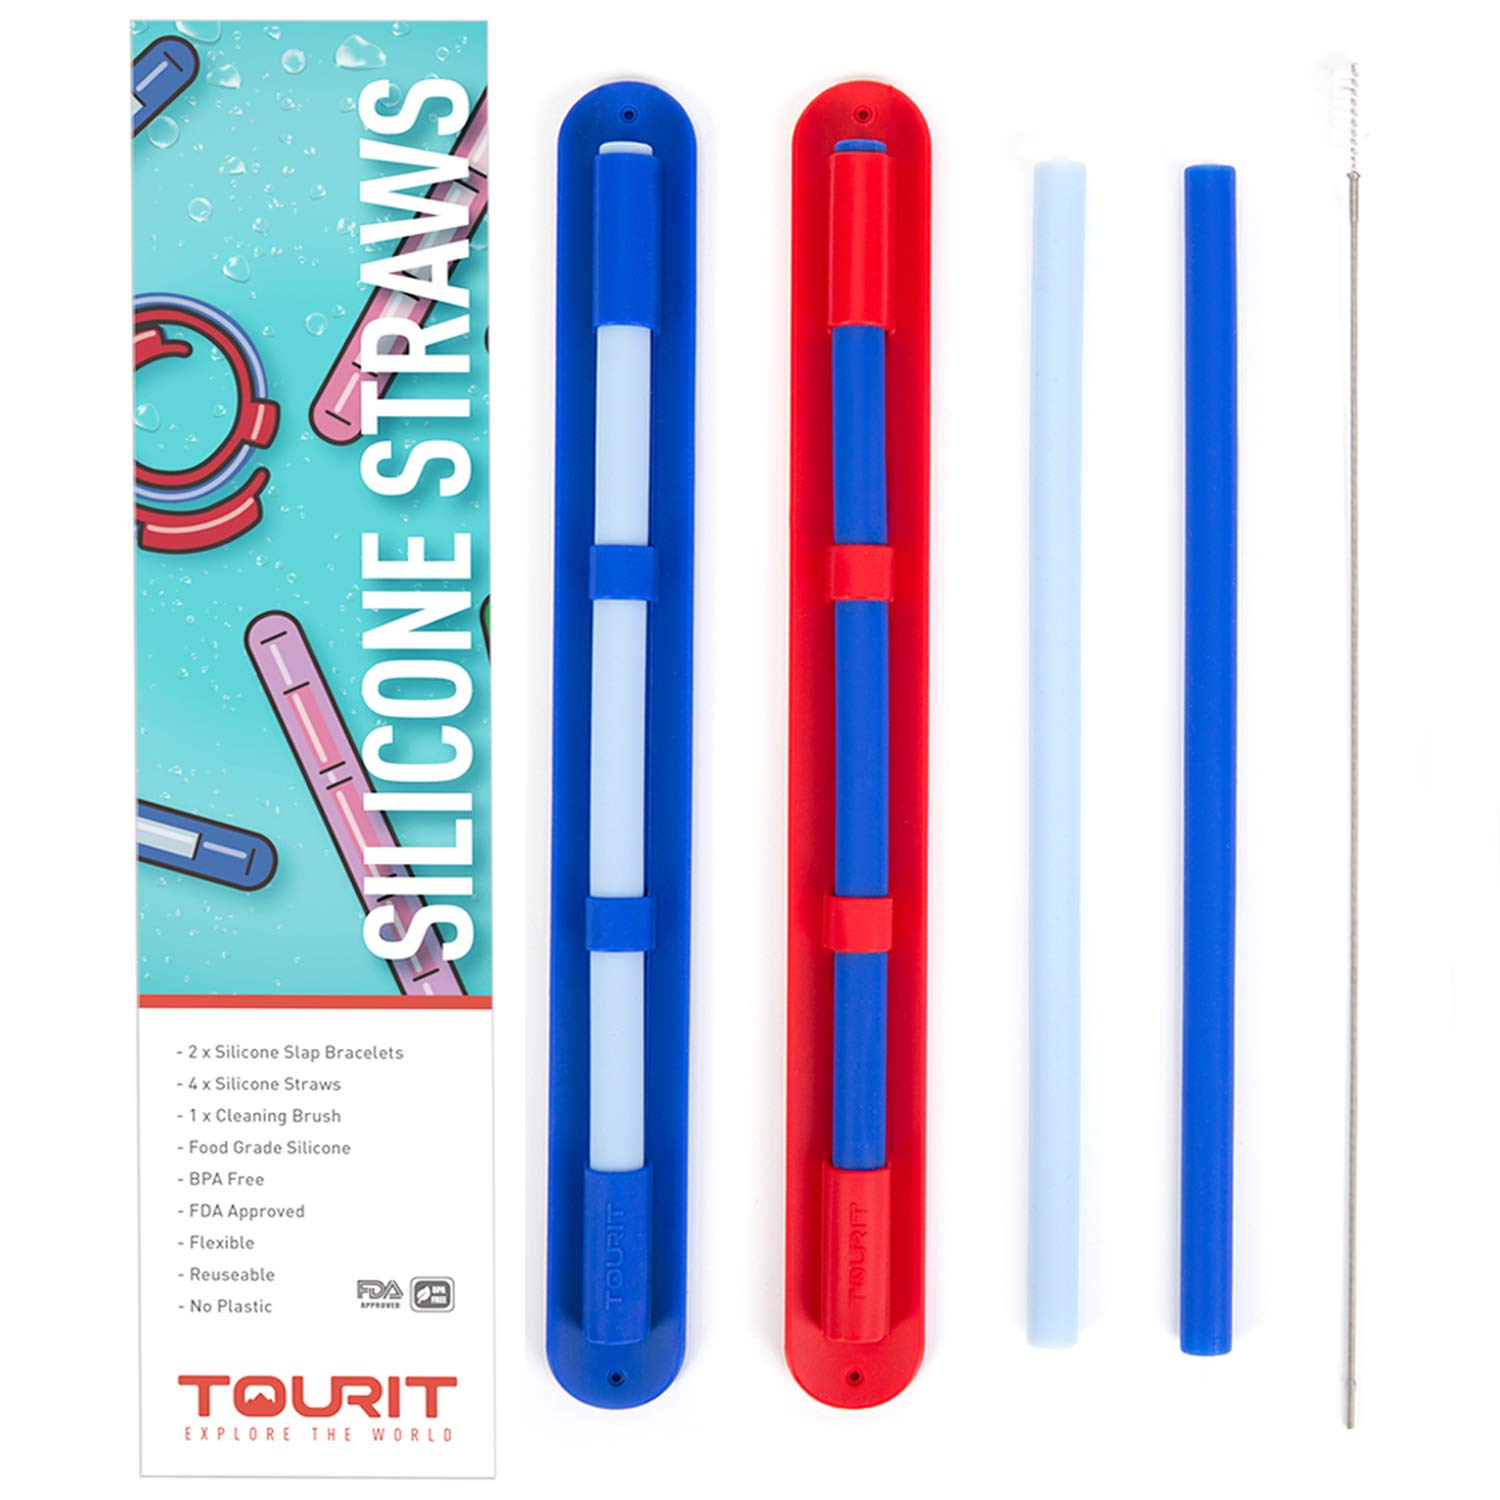 TOURIT Reusable Silicone Straws Regular Size for 30oz and 20oz Tumblers 4 Pack Silicone Drinking Straws with Case and Cleaning Brush BPA Free